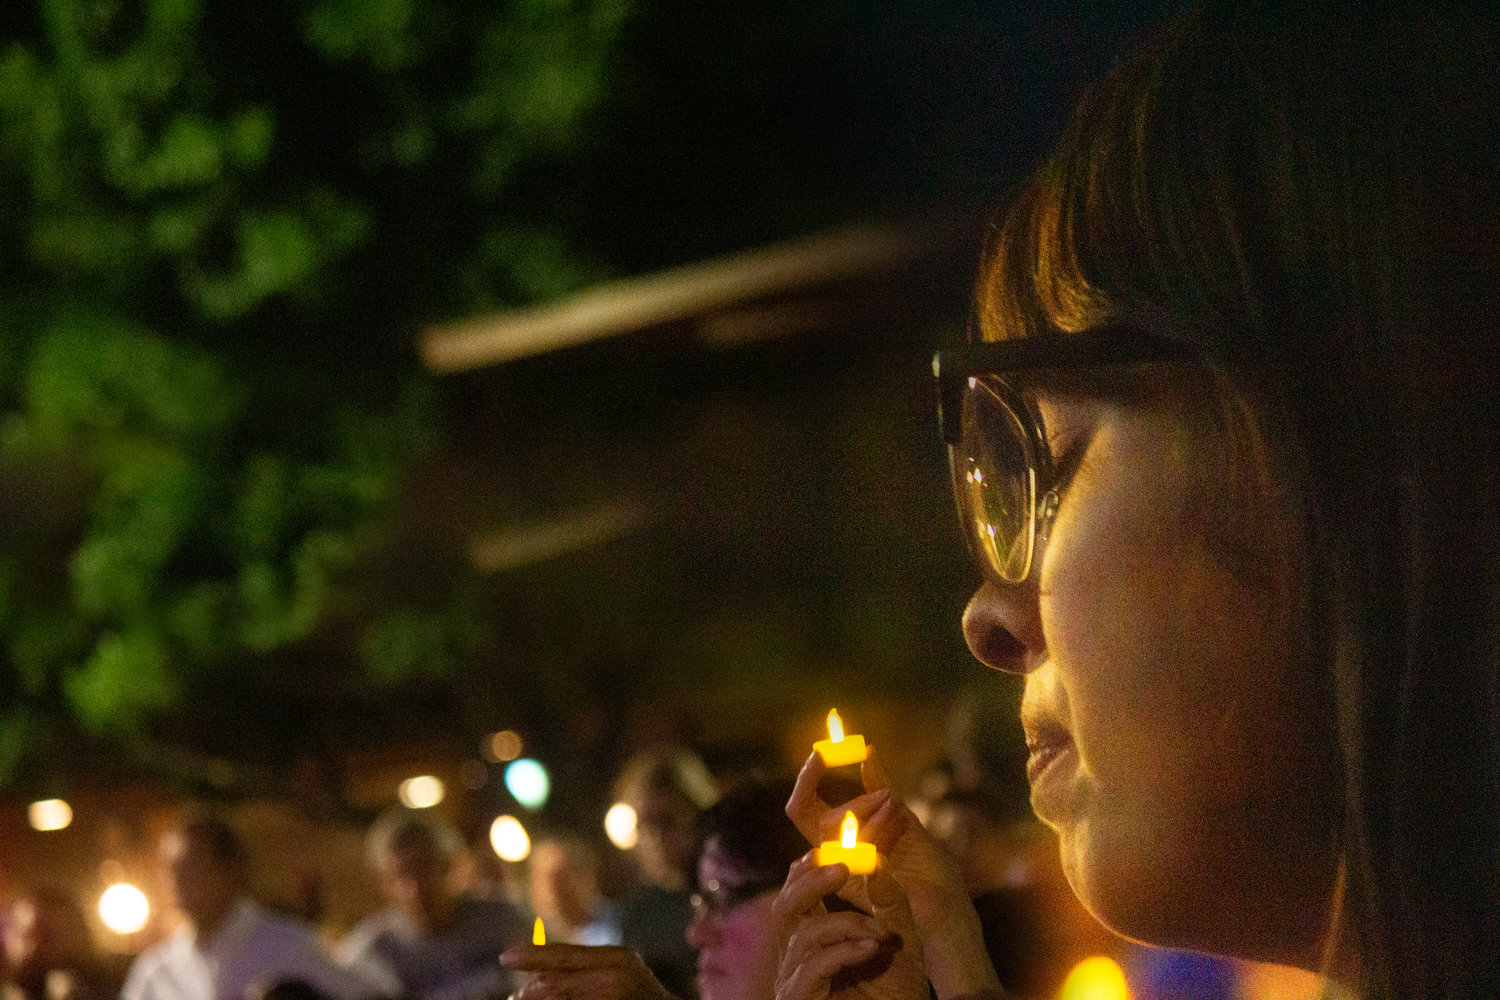 Las Cruces resident Raquel Madrigal reacts to the tragedy that occurred in El Paso Saturday morning during a gathering of solidarity with the City of El Paso Monday night on the Plaza de Las Cruces.